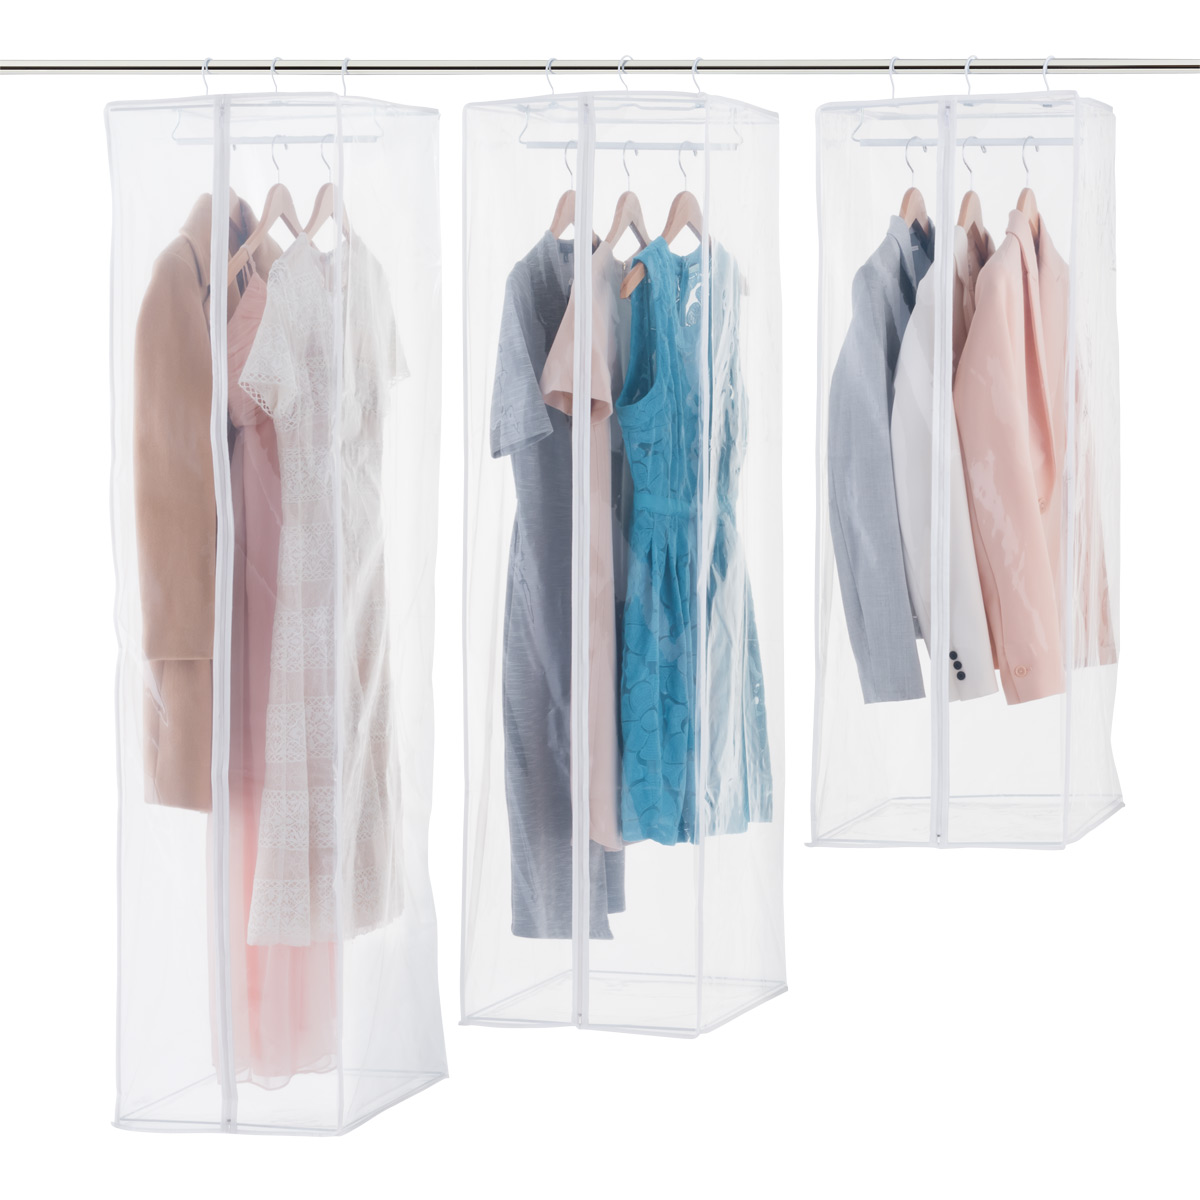 Newest Garment Bag Home Closet Storage Protect Dust Cover Travel Hanging Bag